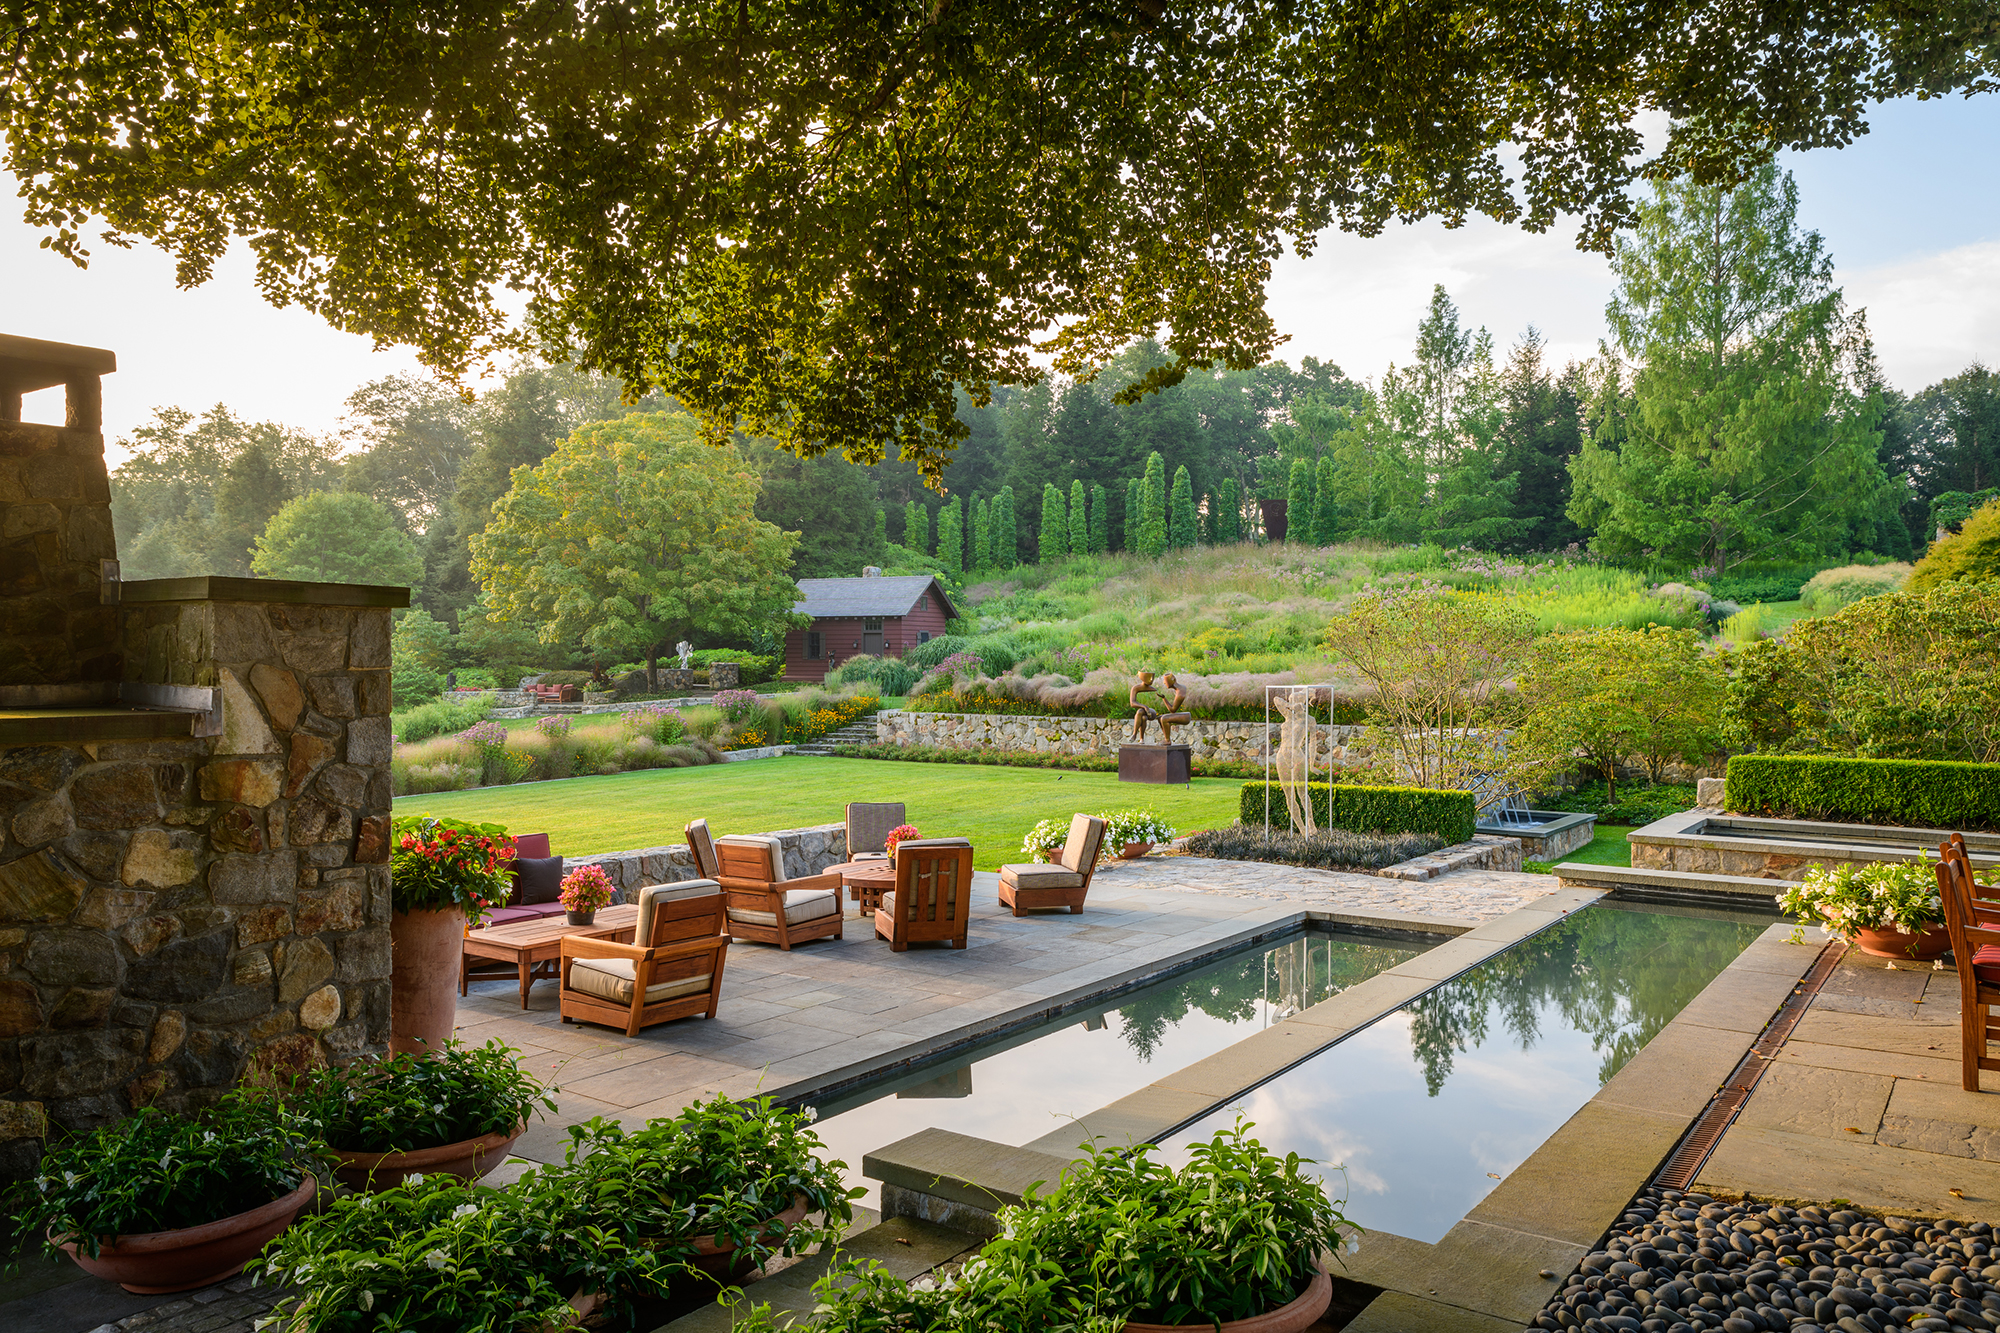 The Redding Garden in Fairfield is a poem of delicate colors and accents of Bluestone that was sourced from a quarry within 75 miles from the site.